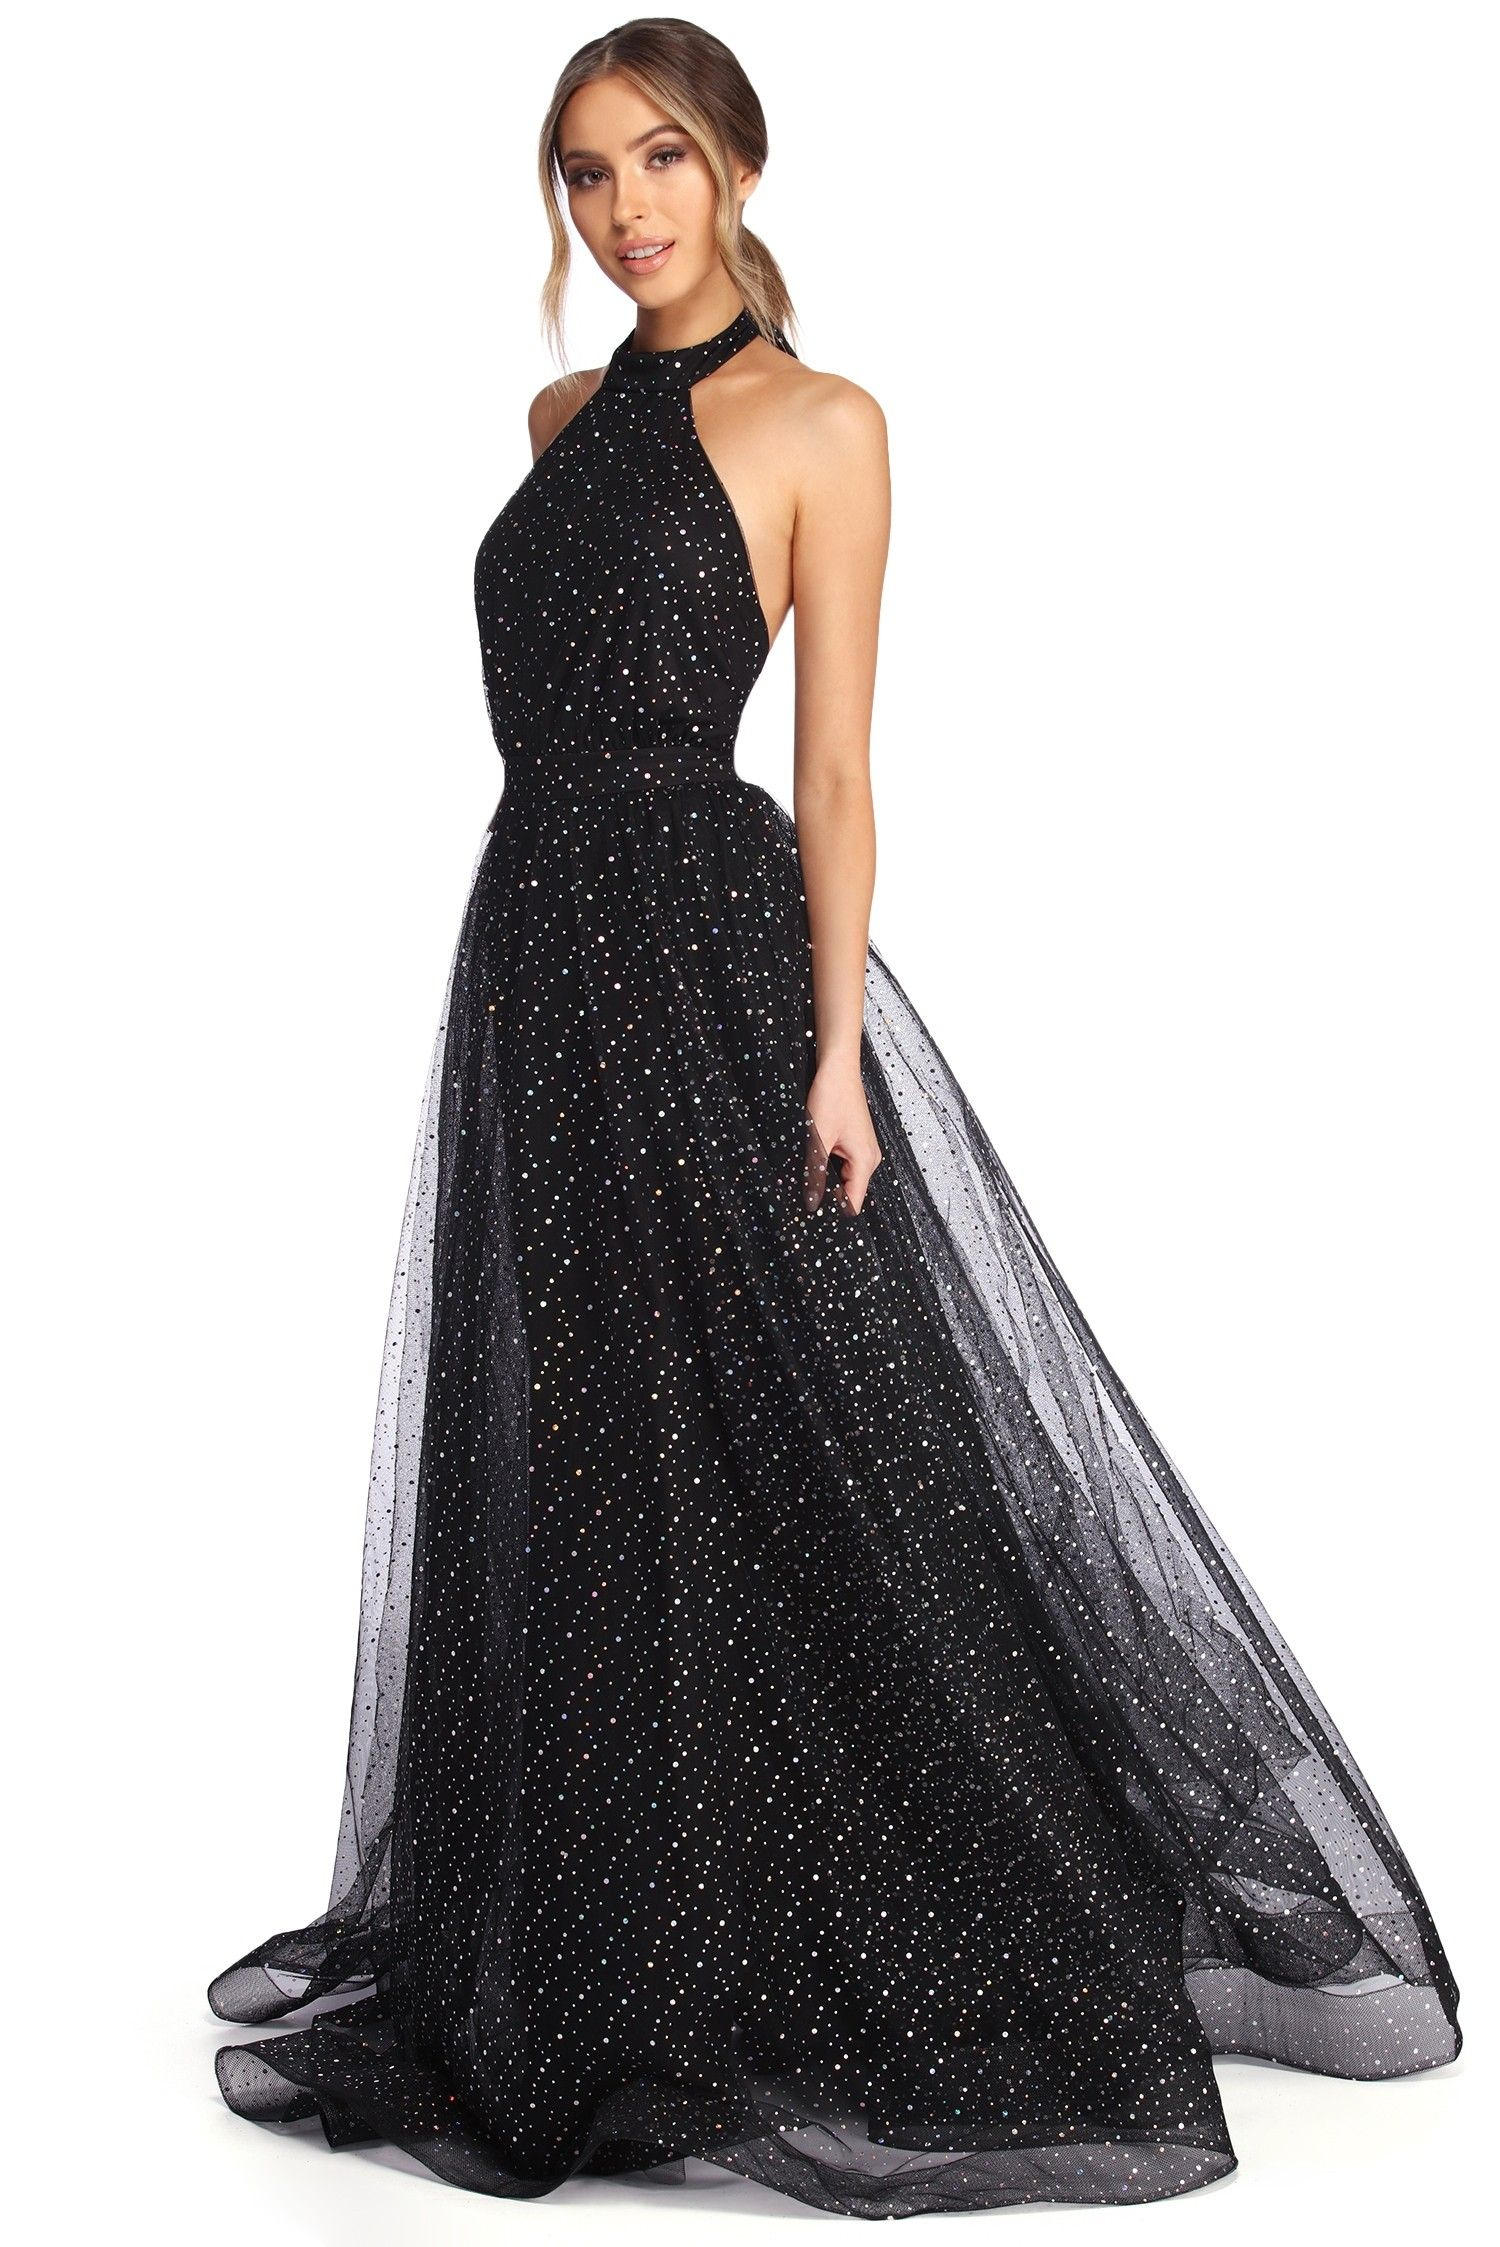 Jeanette Starry Night Ball Gown  Ball gowns, Black ball gown, Dresses